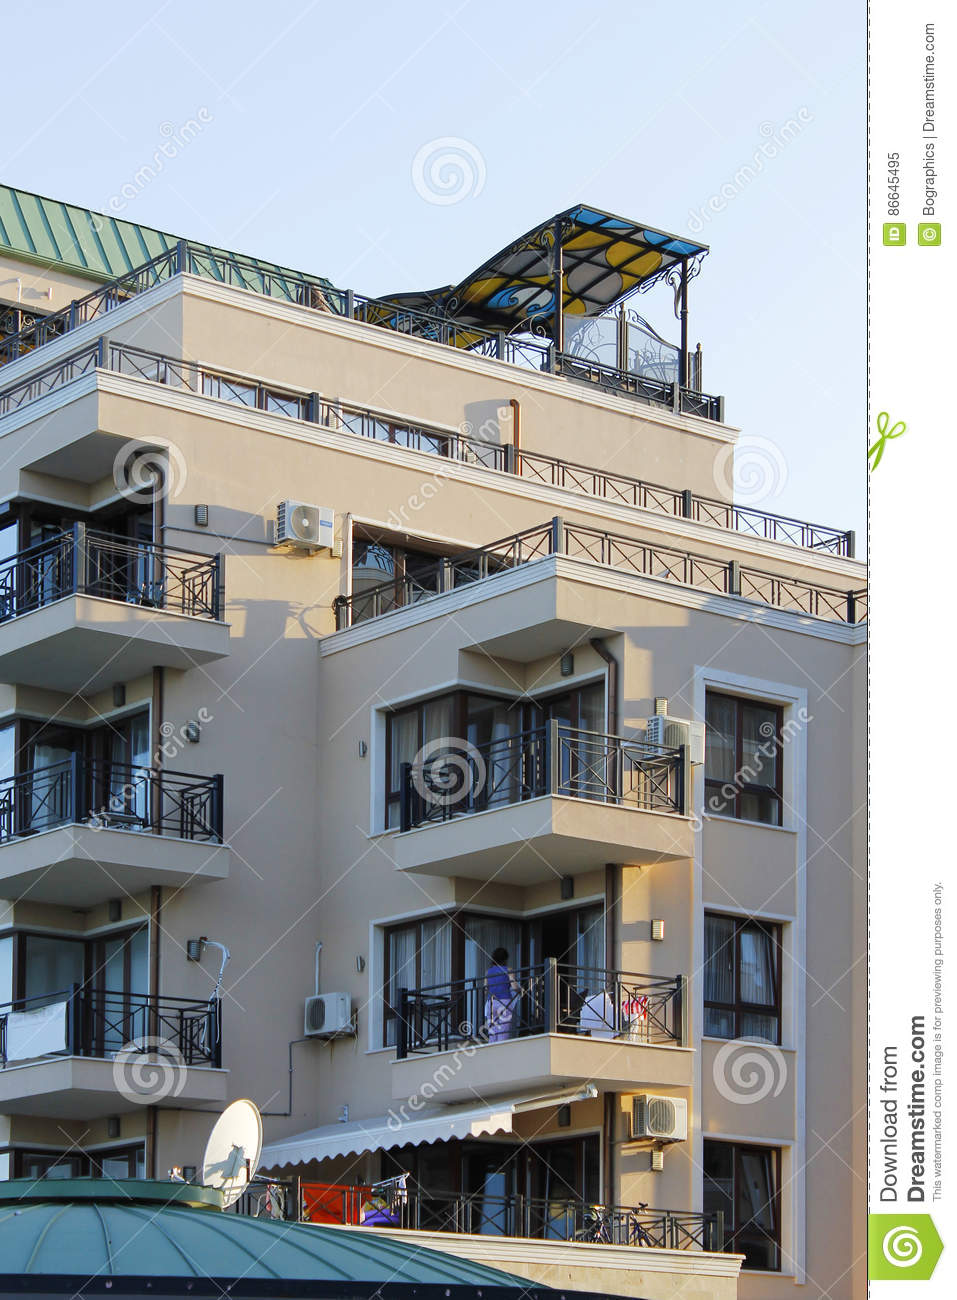 Building with luxury apartments and terraces